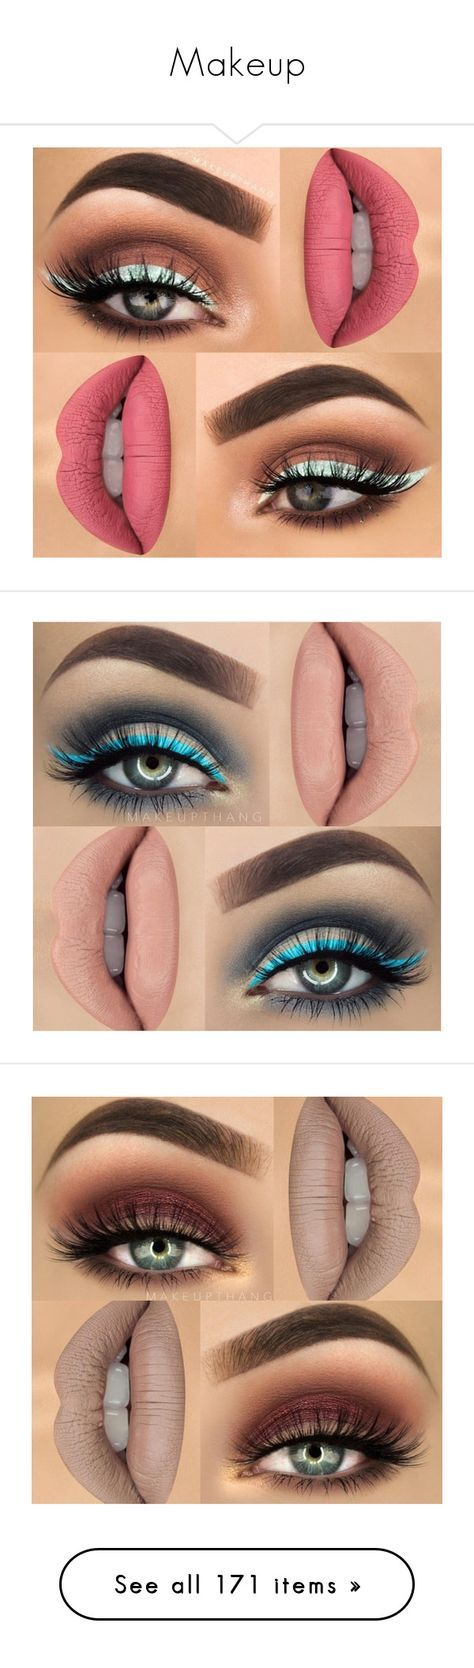 """""""Makeup"""" by mildabas ❤ liked on Polyvore featuring makeup, lipstick, make, beauty products, lip makeup, eyes, lips, mosca, eye makeup and eyeshadow"""